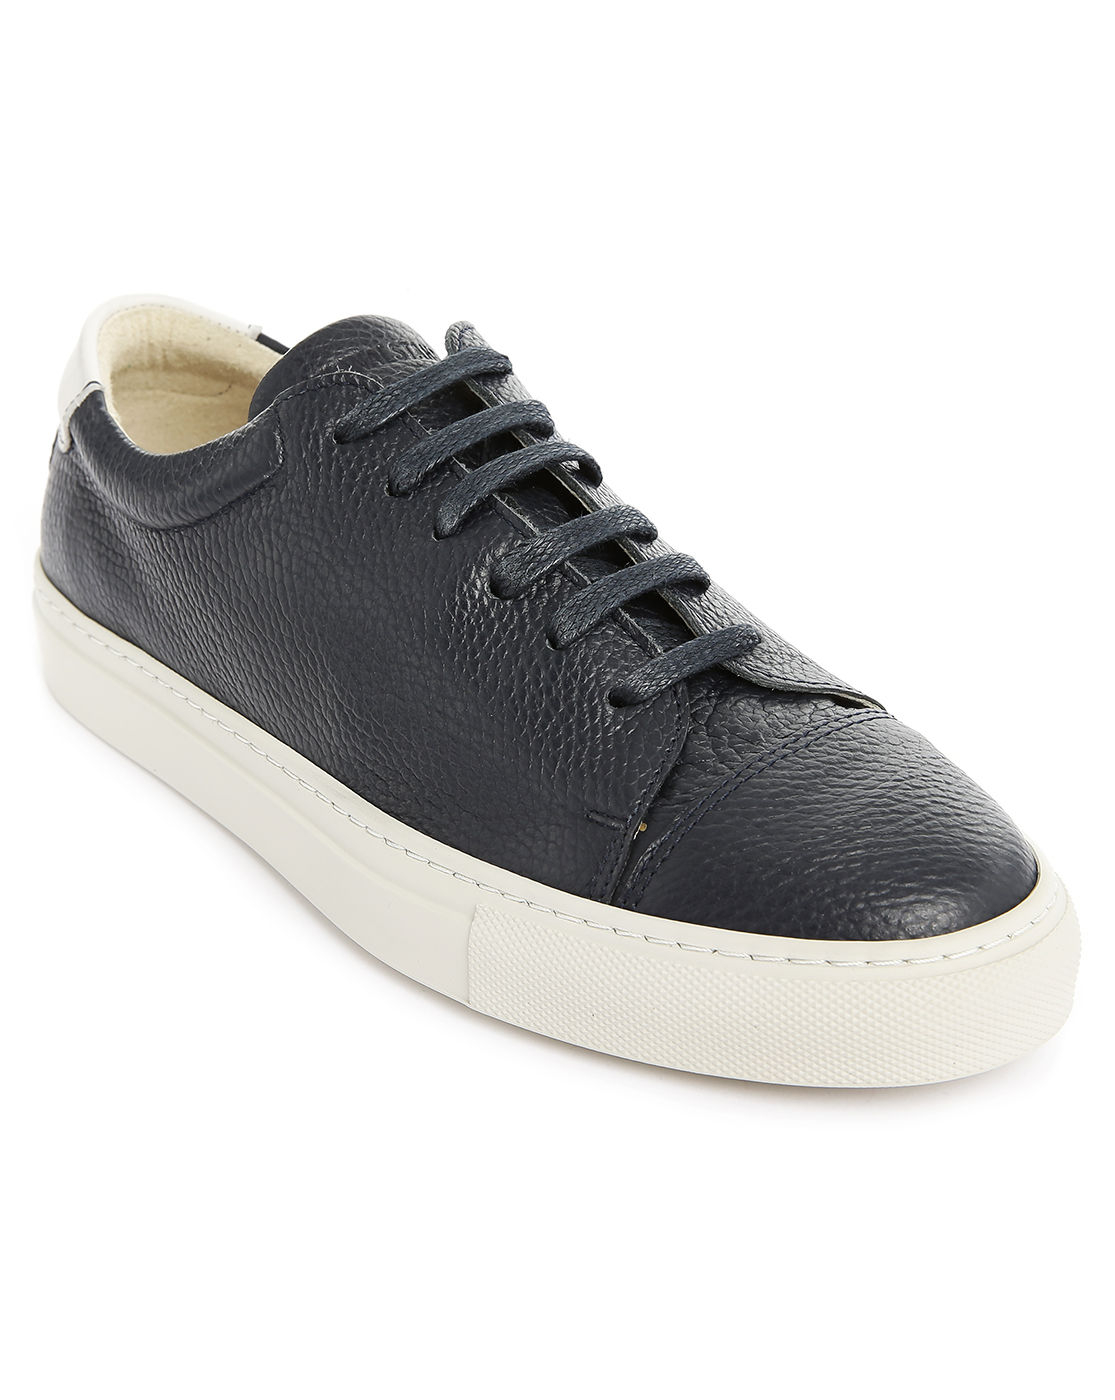 national standard edition 3 navy chevron leather sneakers. Black Bedroom Furniture Sets. Home Design Ideas